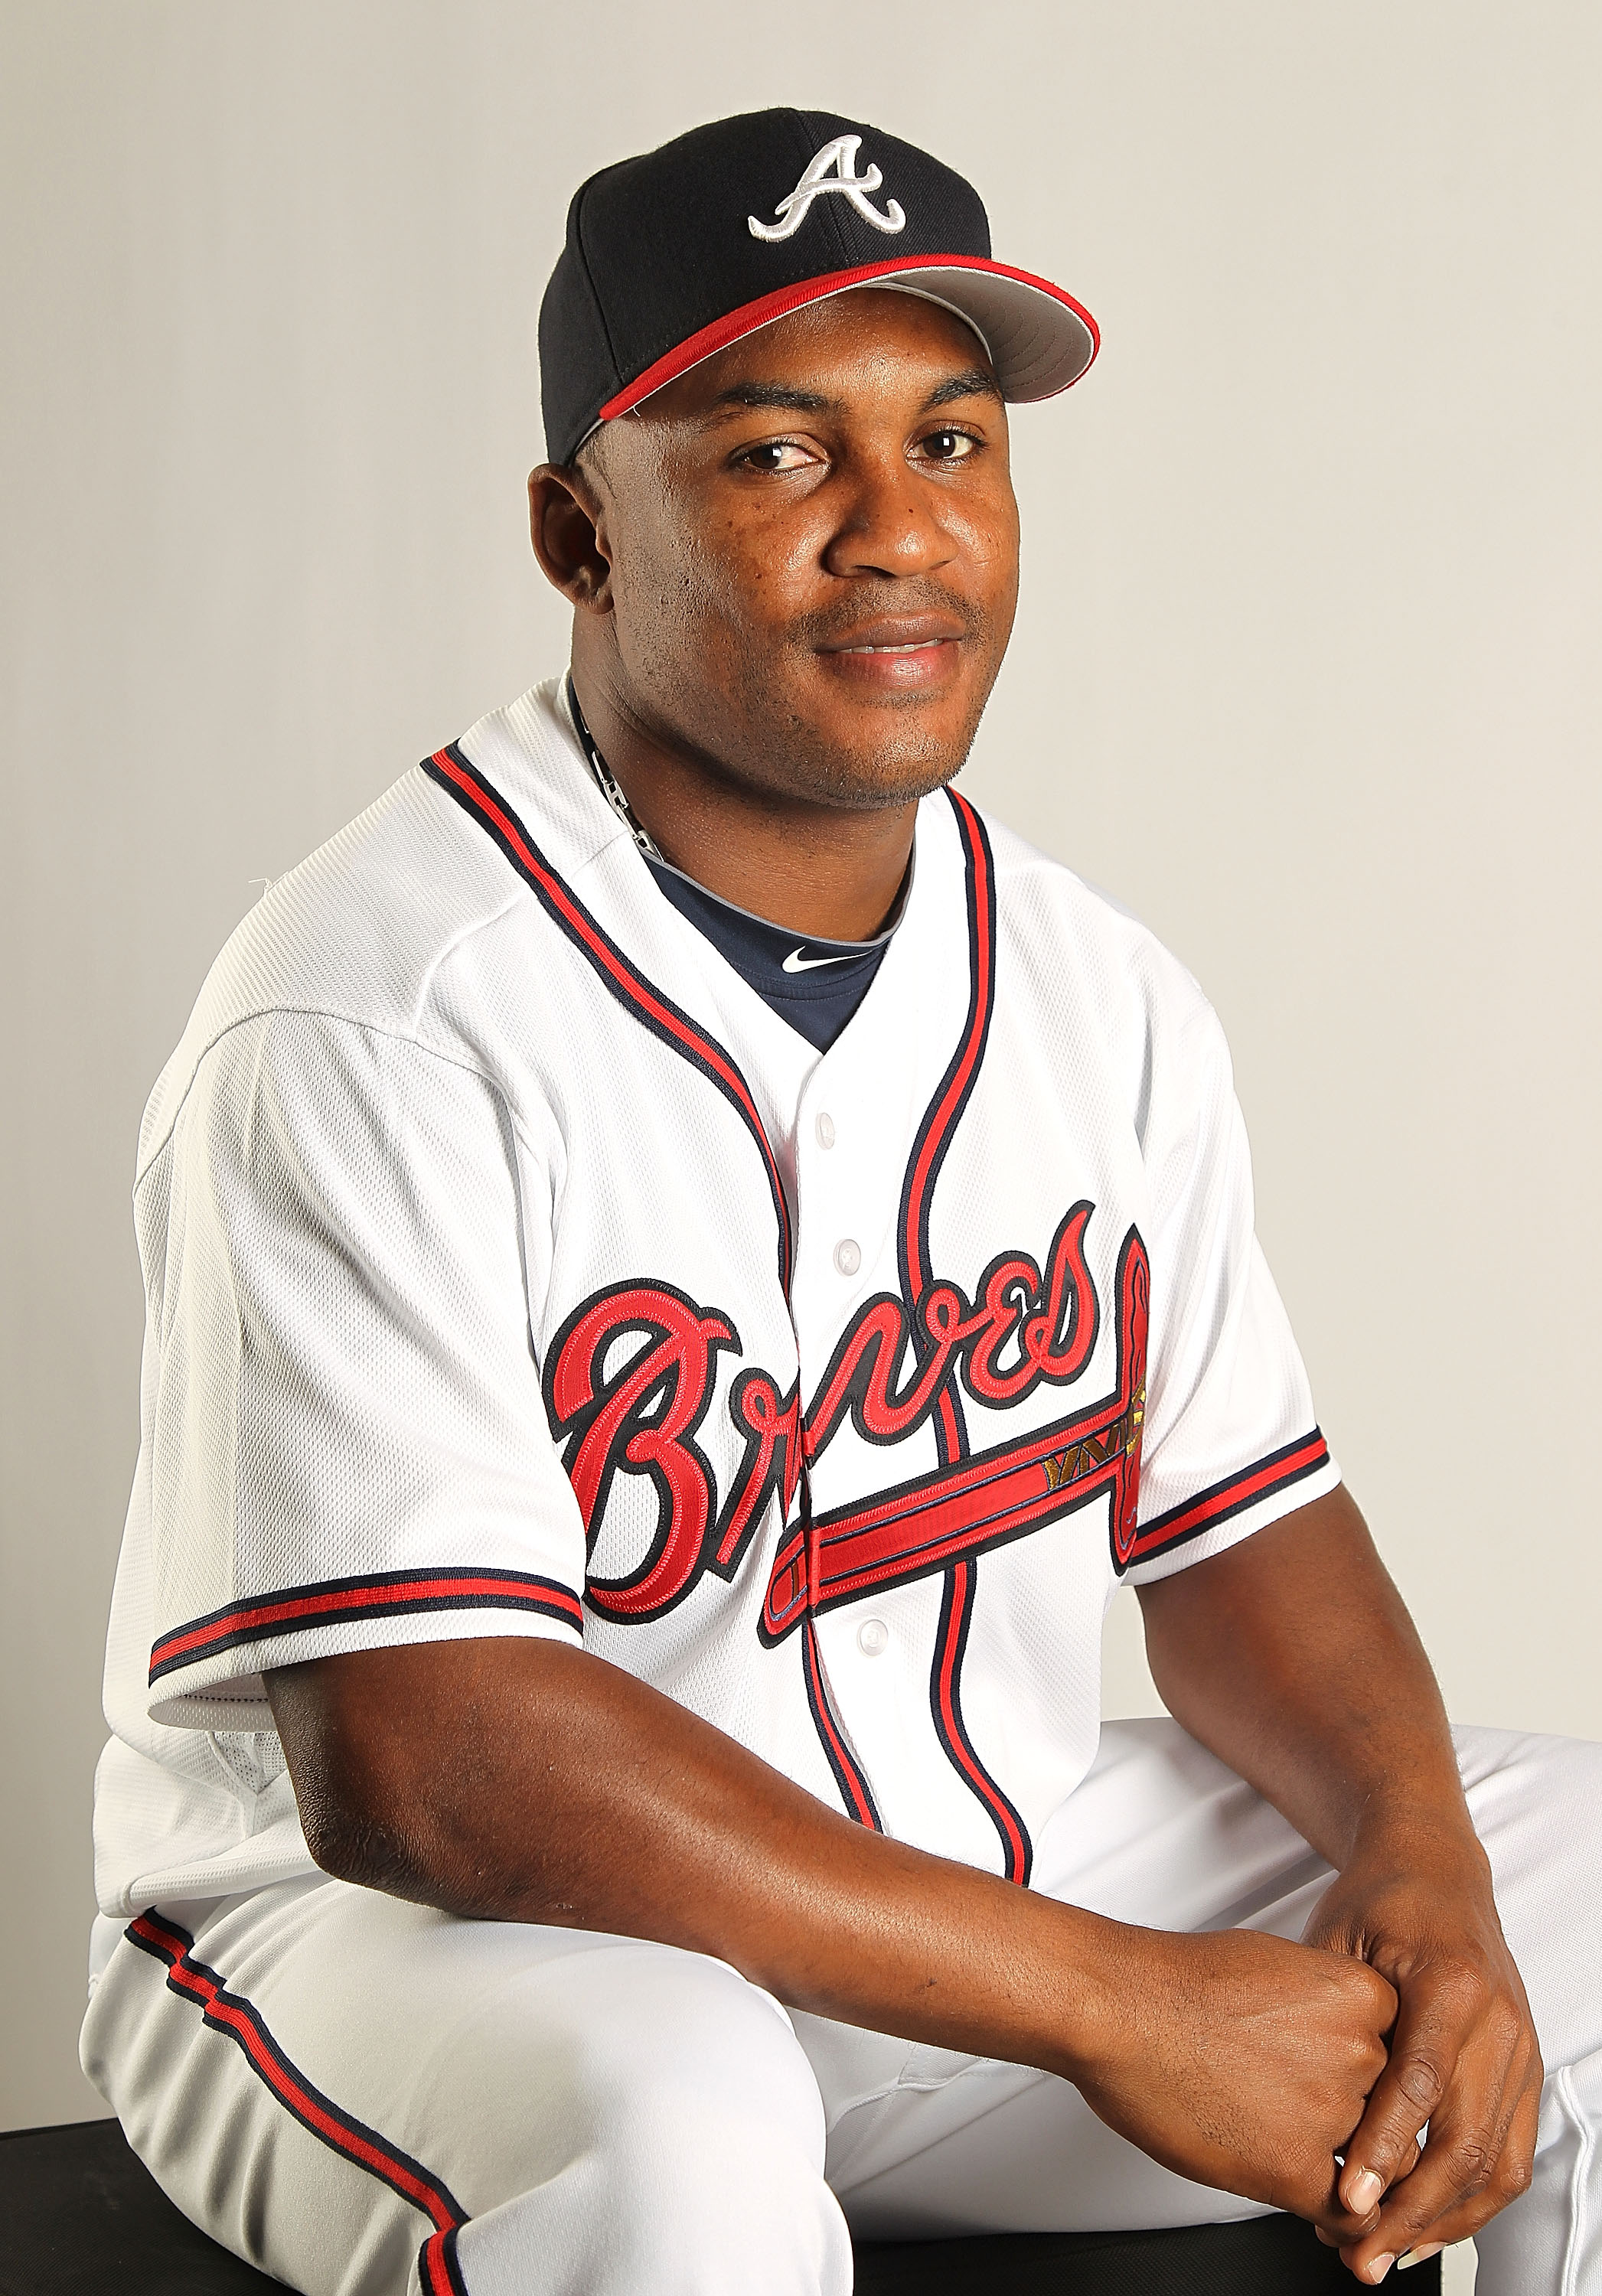 LAKE BUENA VISTA, FL - FEBRUARY 21: Jose Constanza #78 of the Atlanta Braves during Photo Day at  Champion Stadium at ESPN Wide World of Sports of Complex on February 21, 2011 in Lake Buena Vista, Florida. (Photo by Mike Ehrmann/Getty Images)